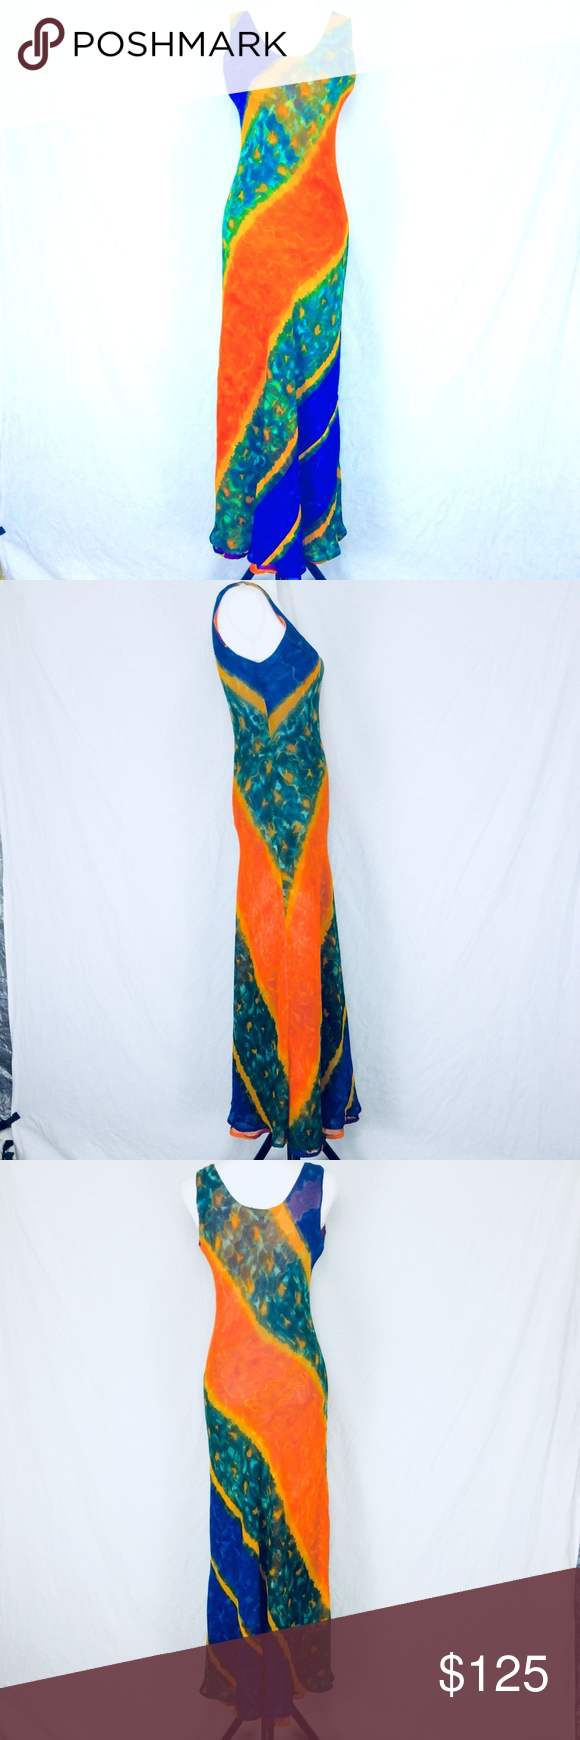 44722c6e29f I just added this listing on Poshmark  Ash   Sara Sm Long Colorful Summer  Maxi Dress.  shopmycloset  poshmark  fashion  shopping  style  forsale  Ash    Sara ...